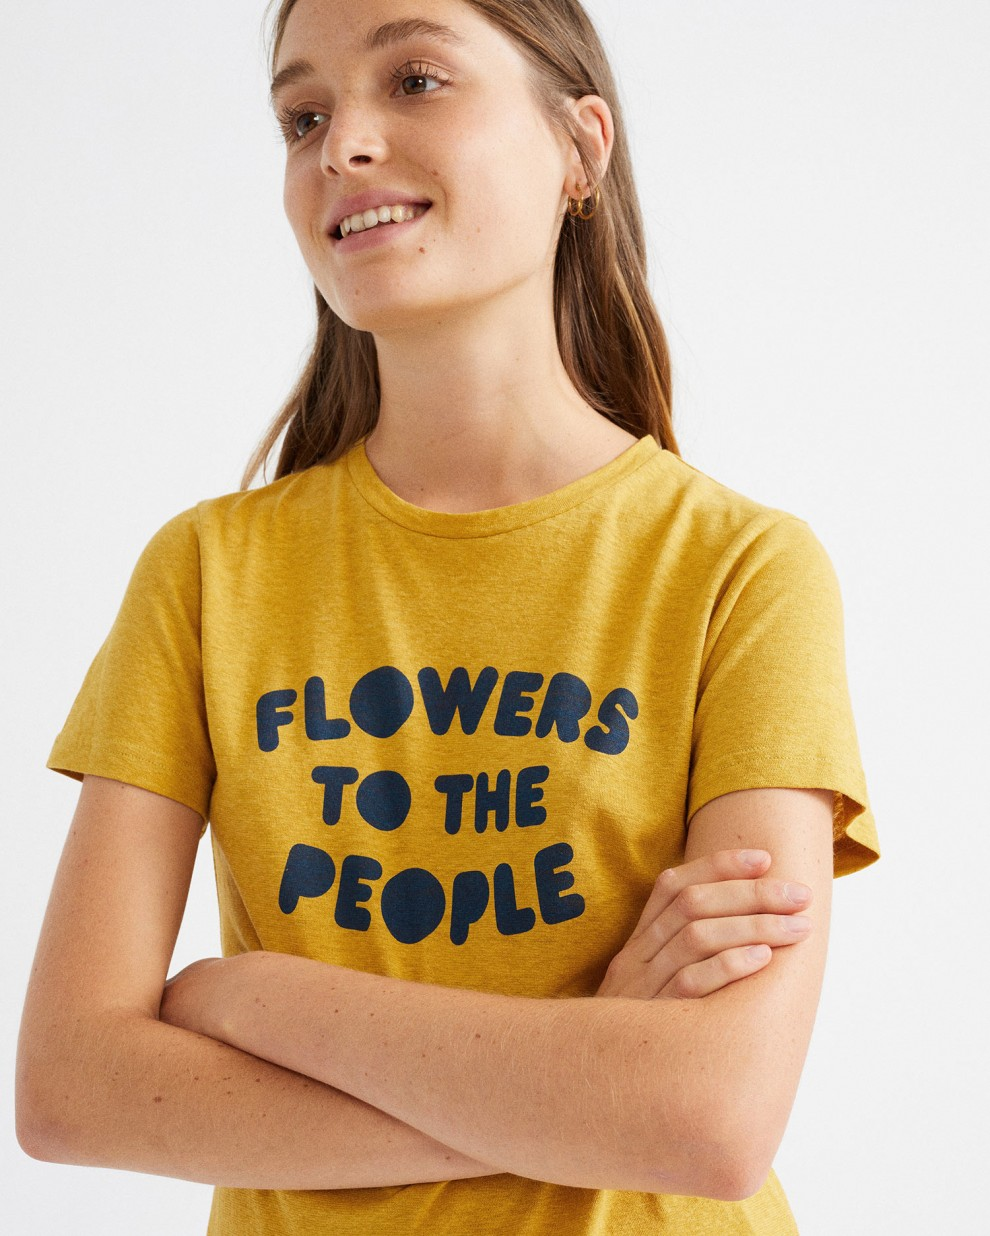 FLOWERS TO THE PEOPLE T-SHIRT